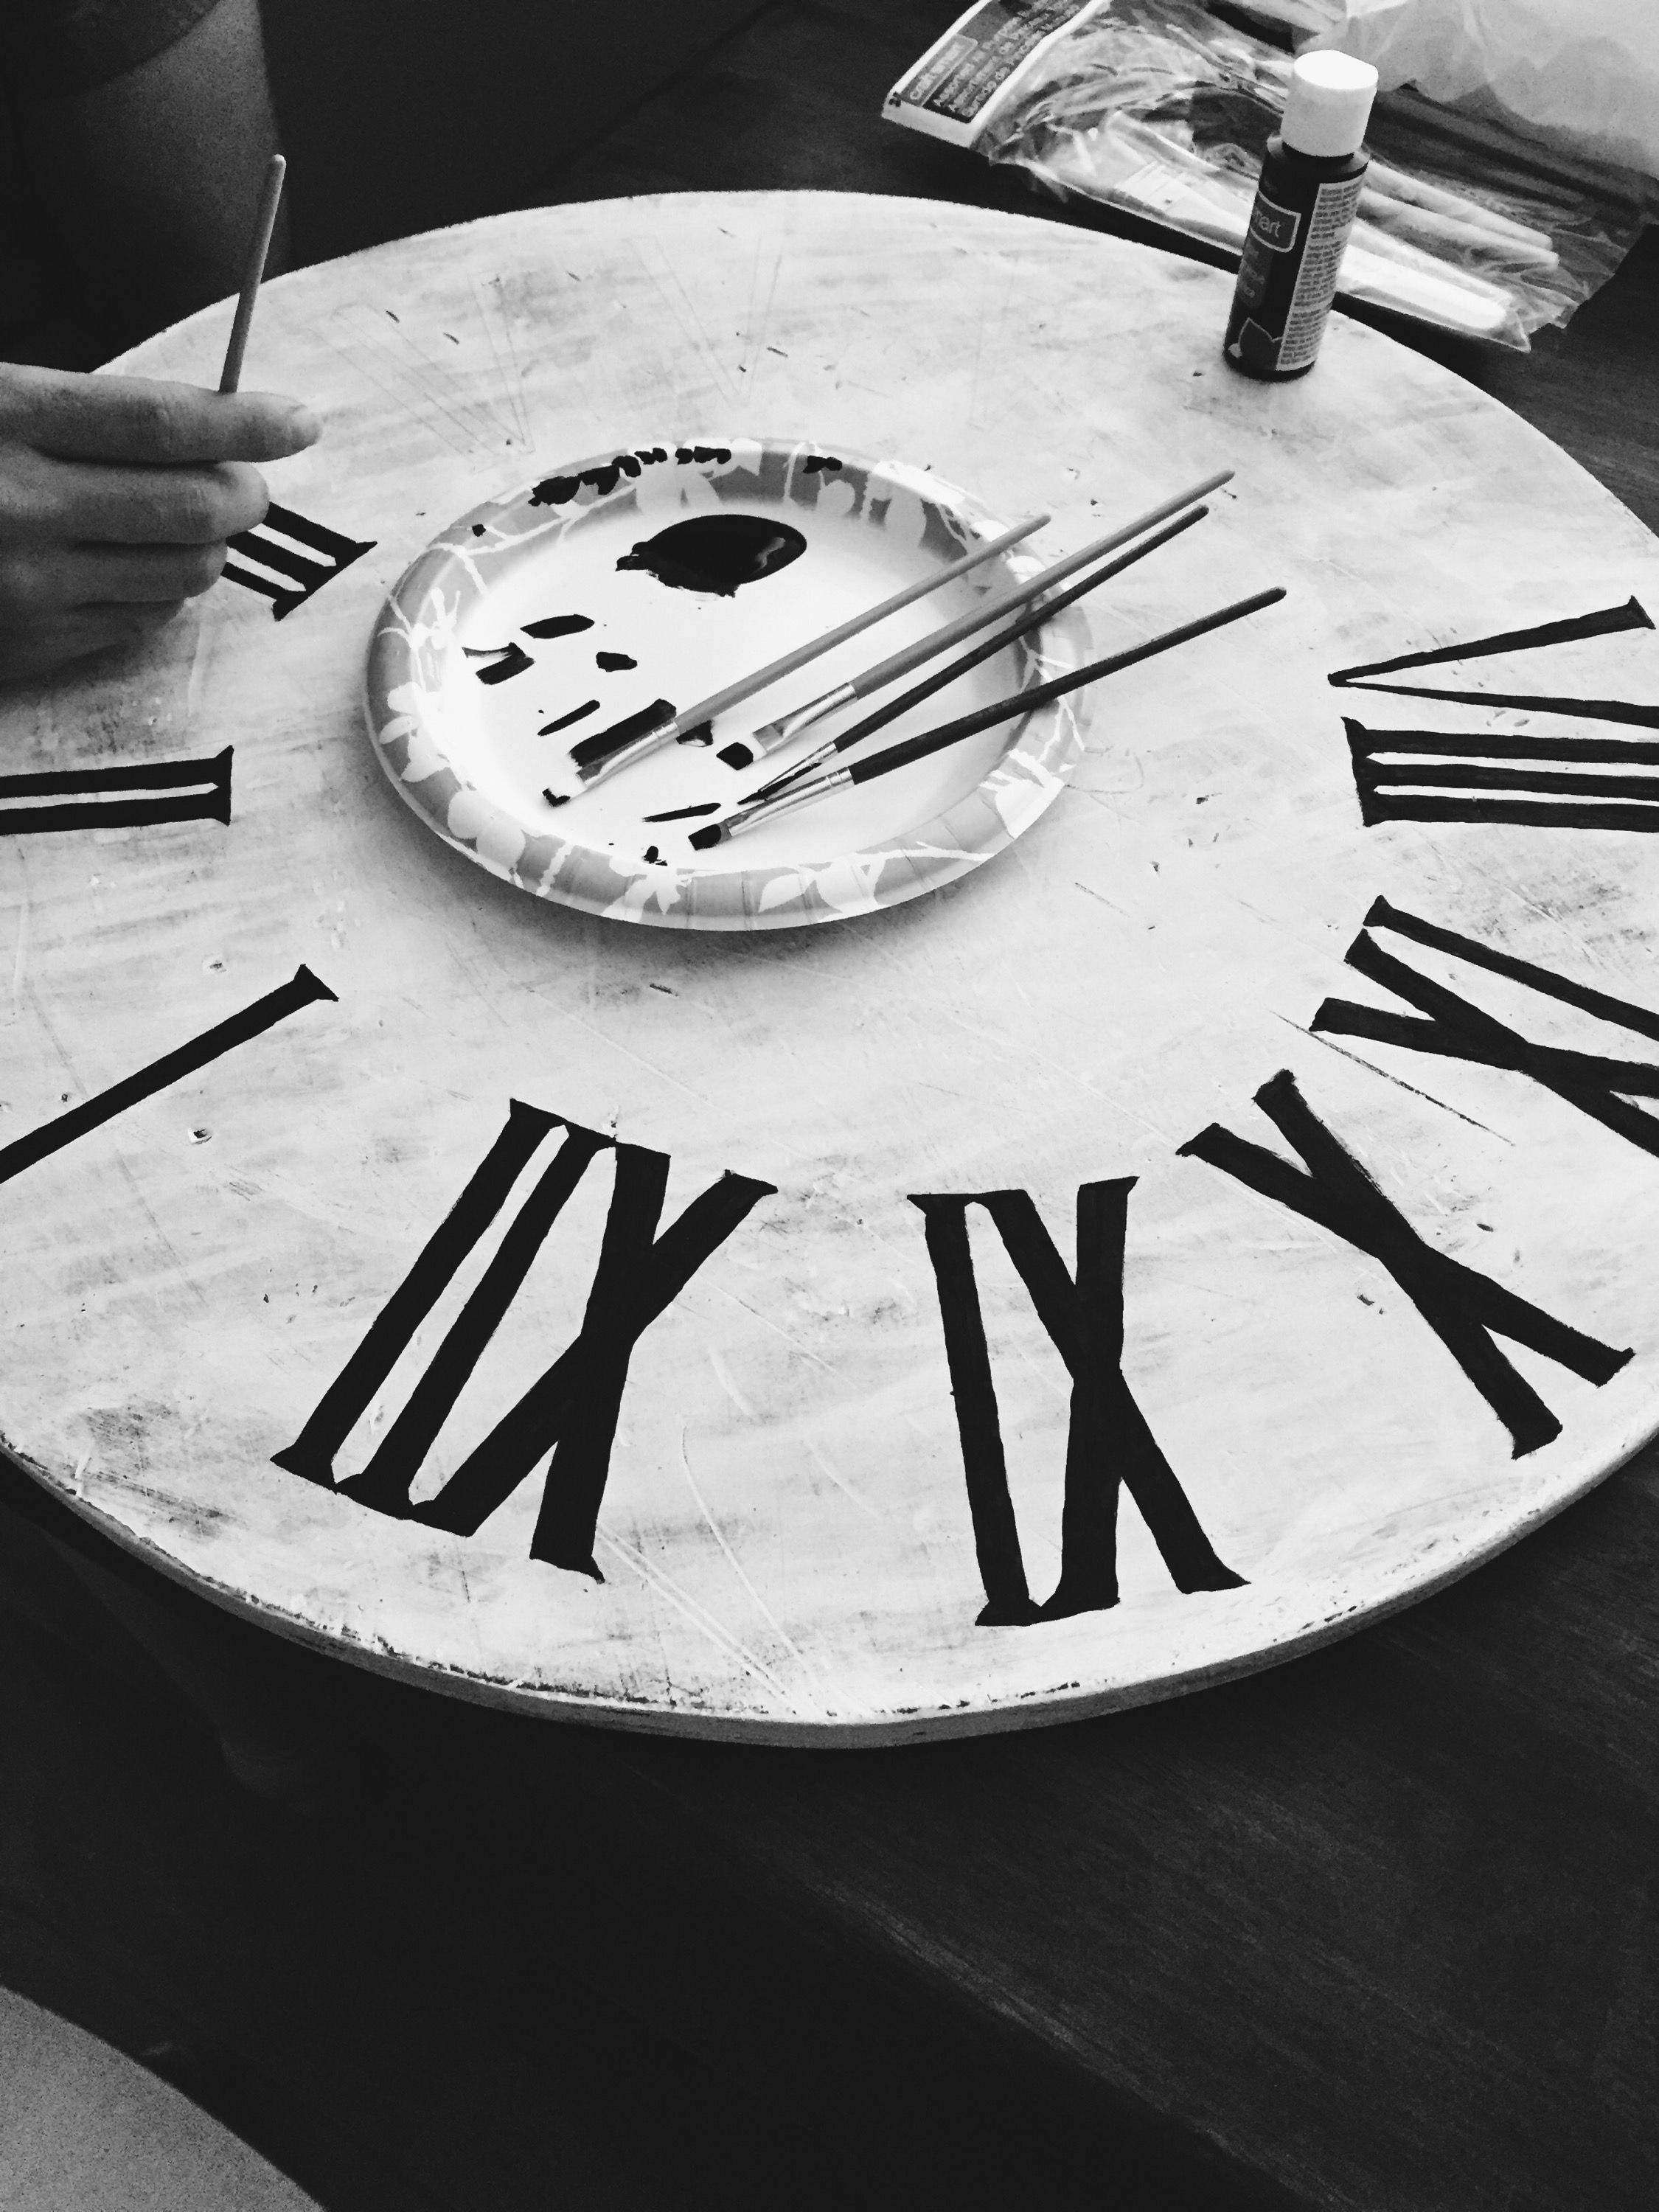 How To Make A Wooden Roman Numeral Clock Similar To The